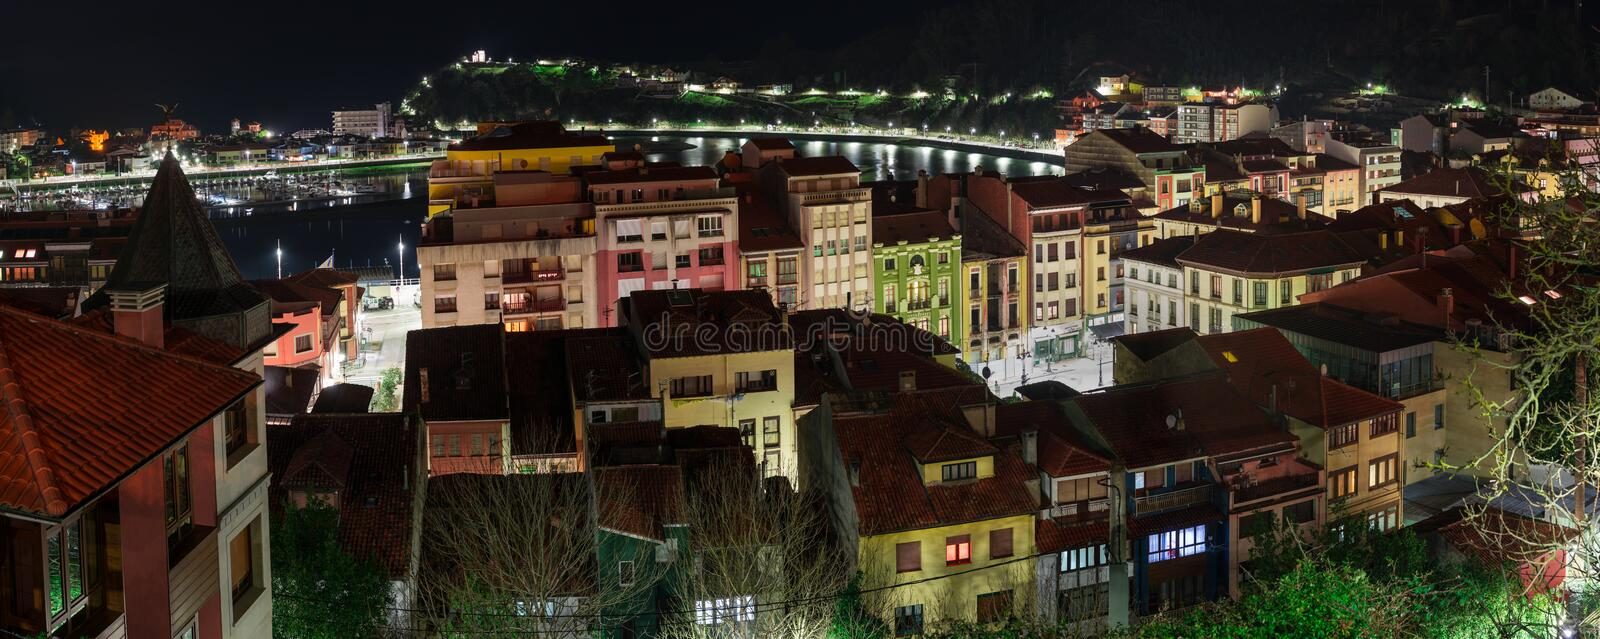 Night view of the city of Ribadesella stock images